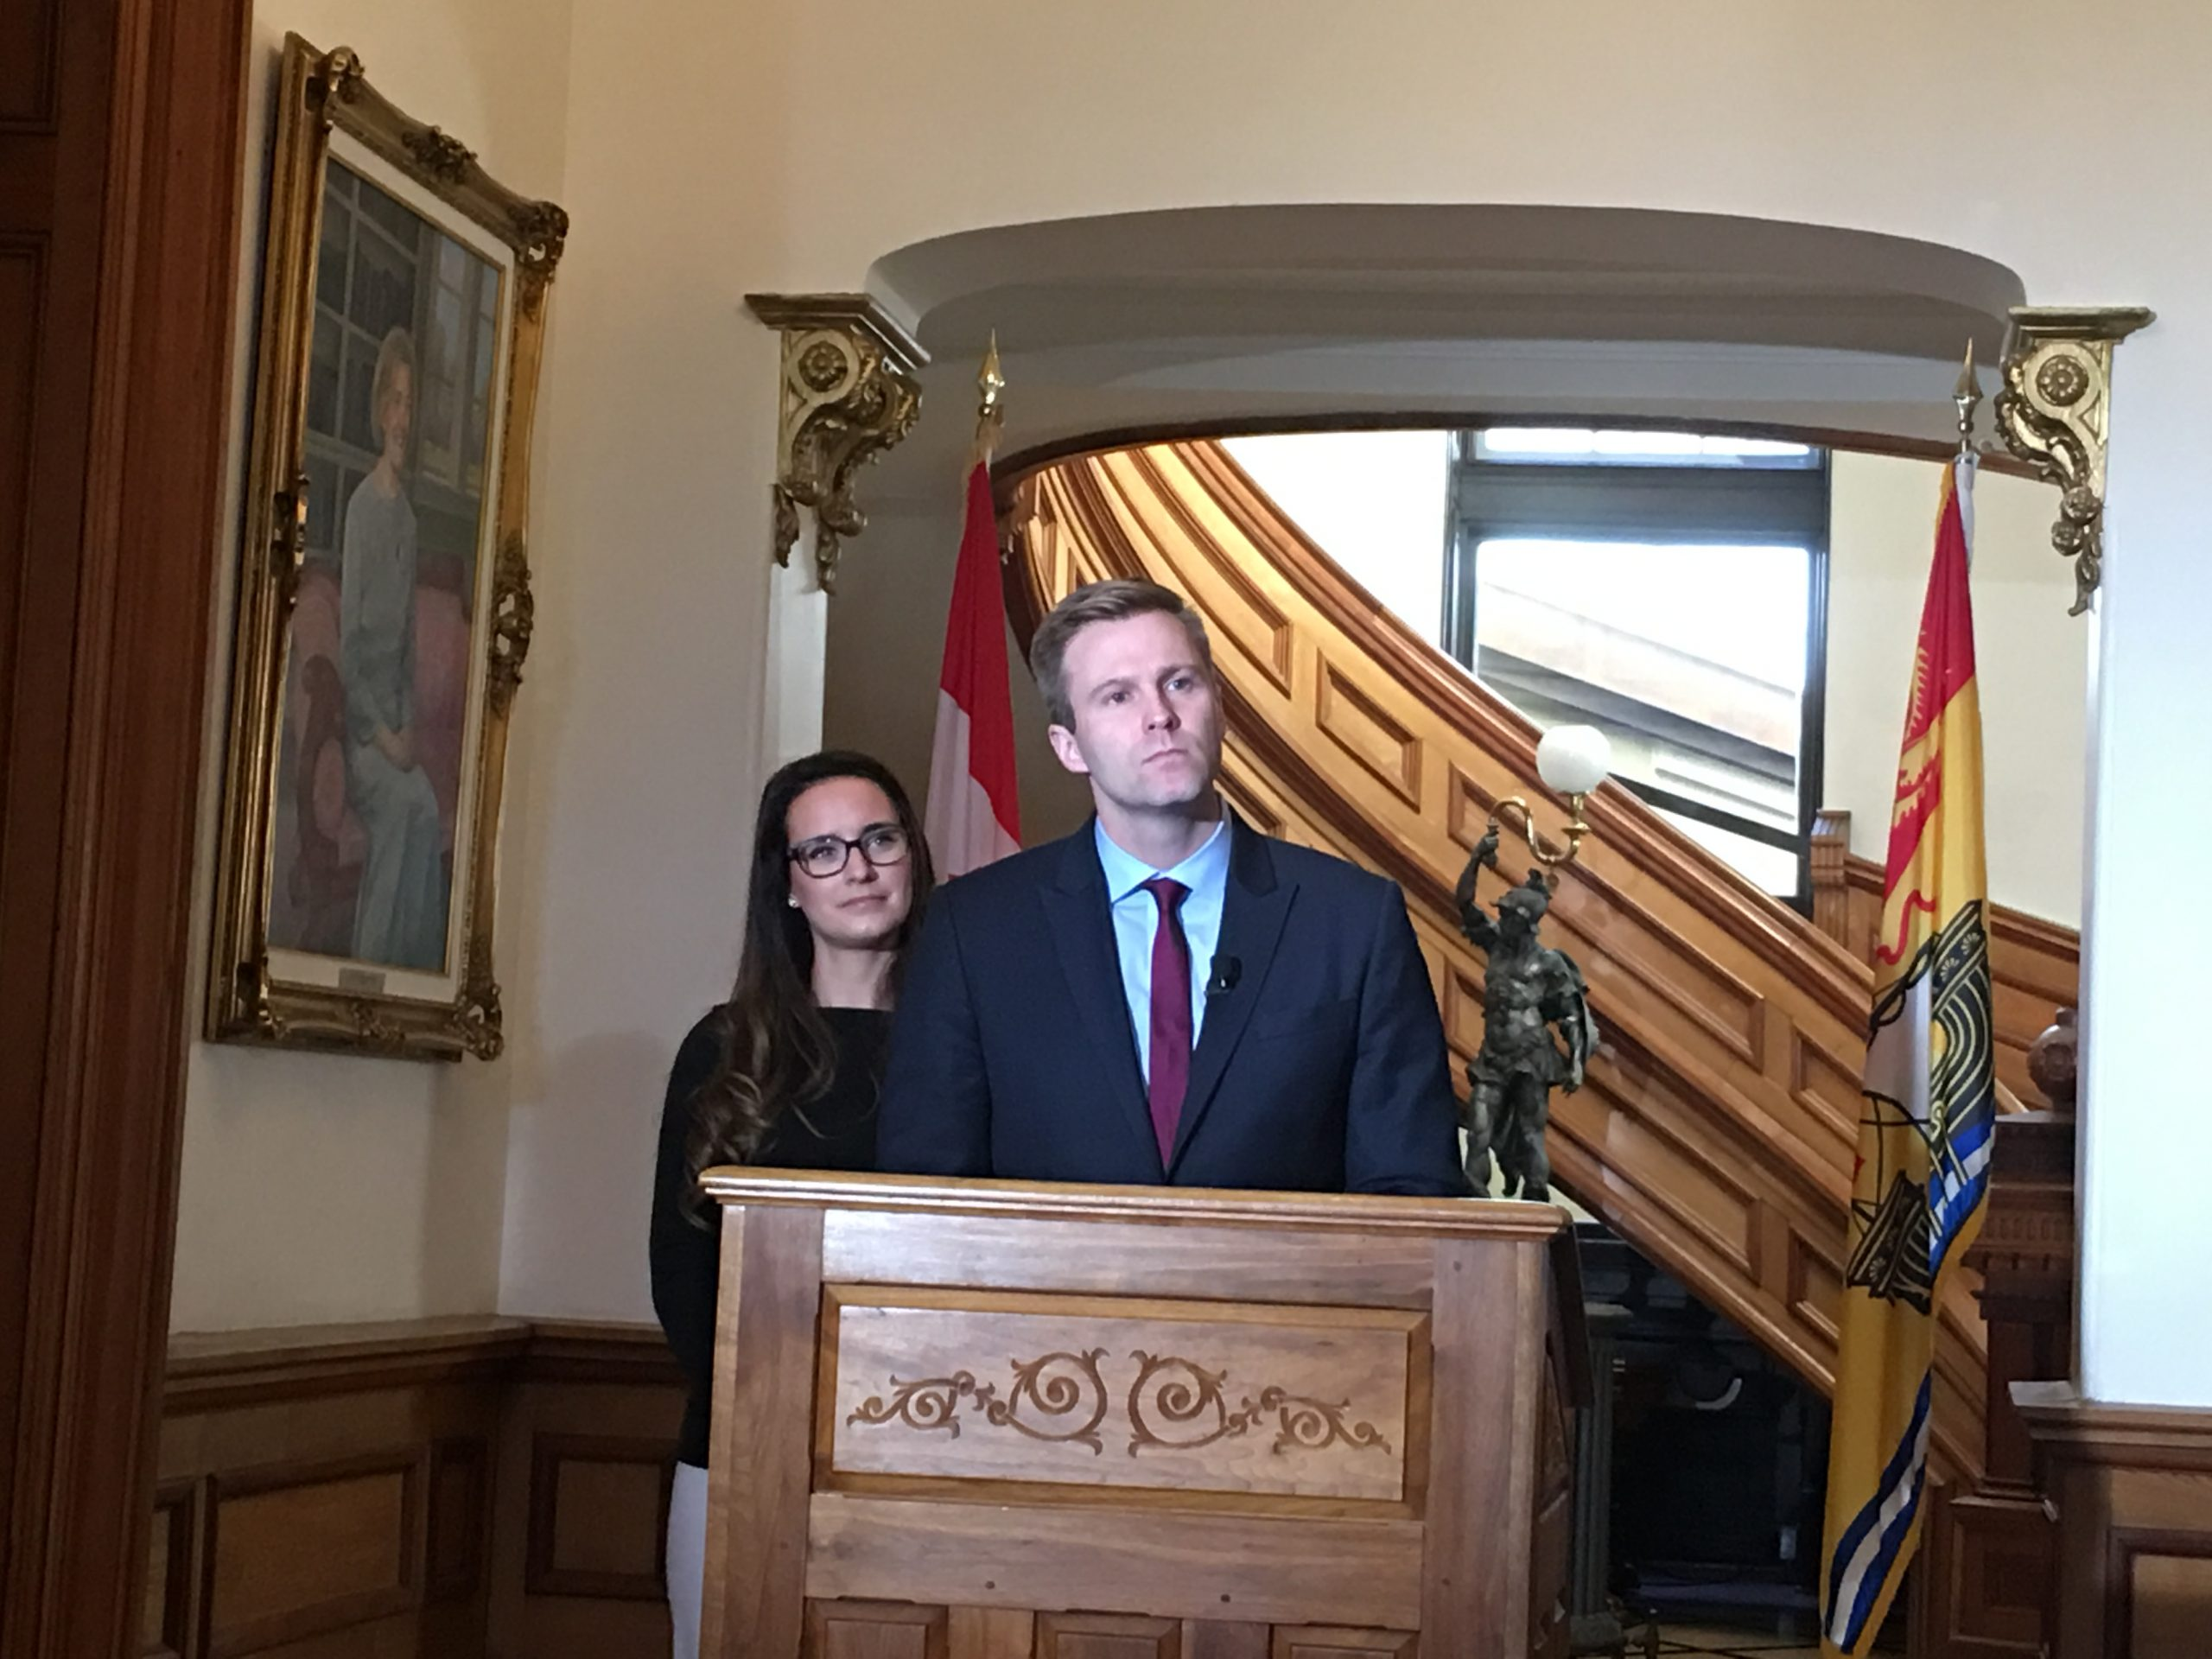 UPDATED: Brian Gallant Will Step Down After New Leader Chosen